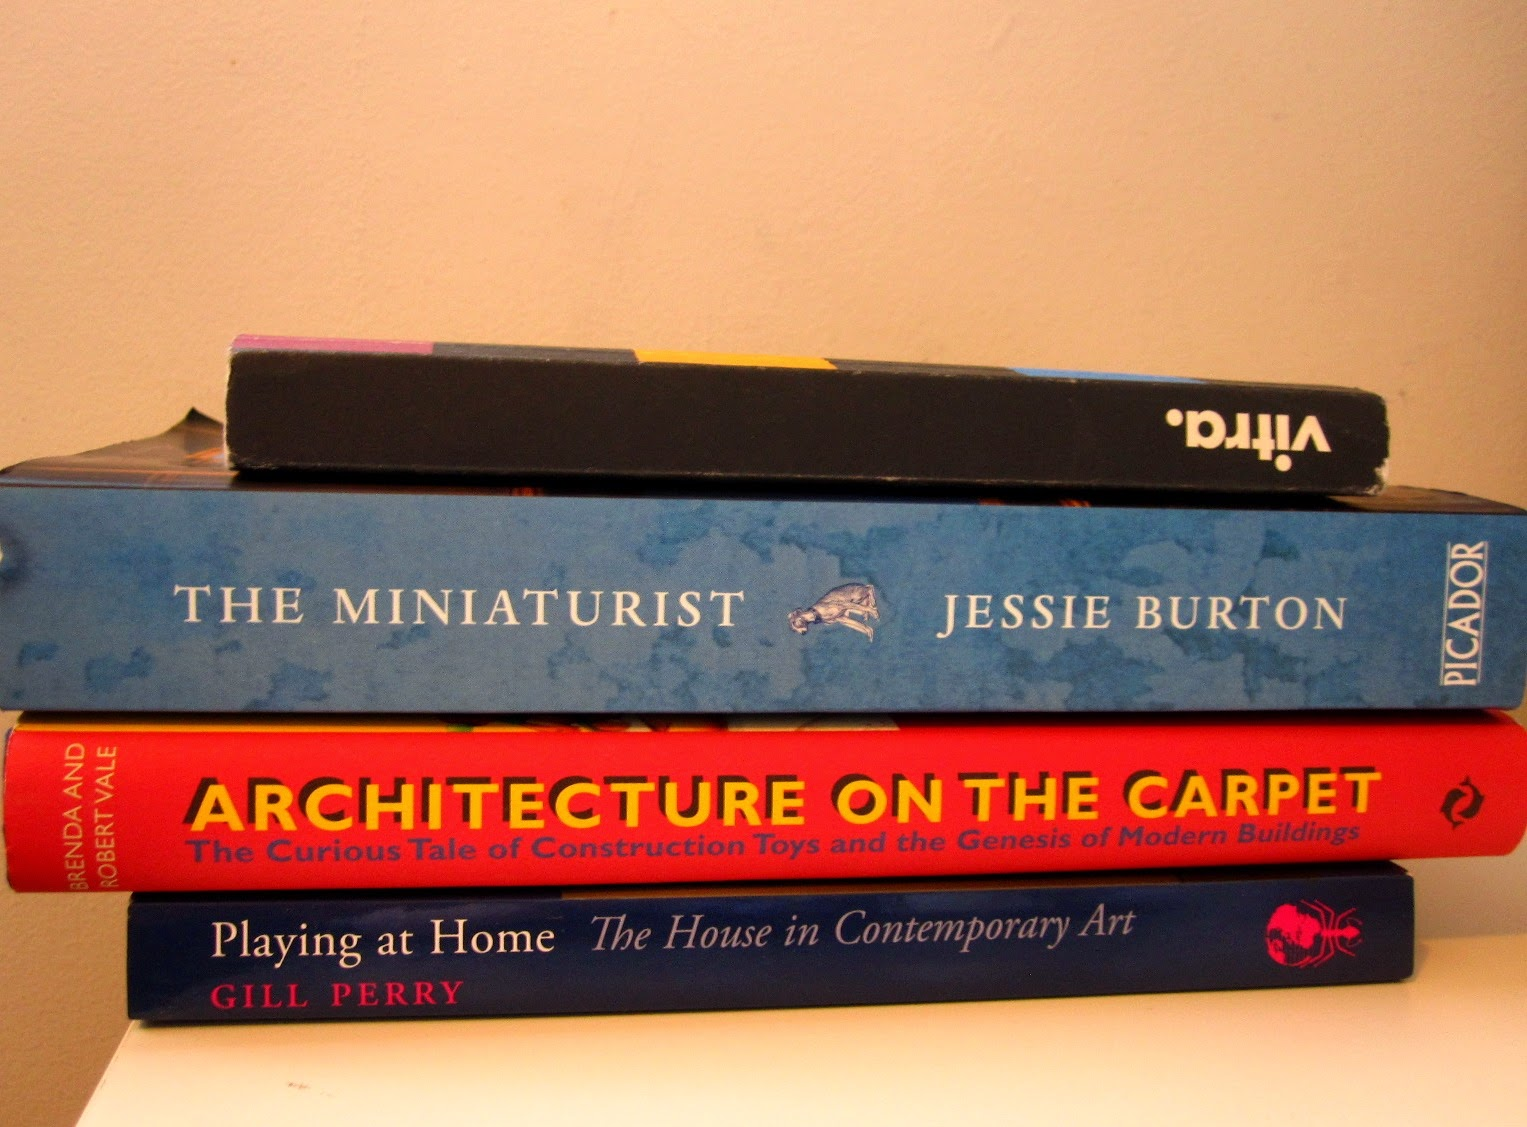 Four miniature-related books in a pile.